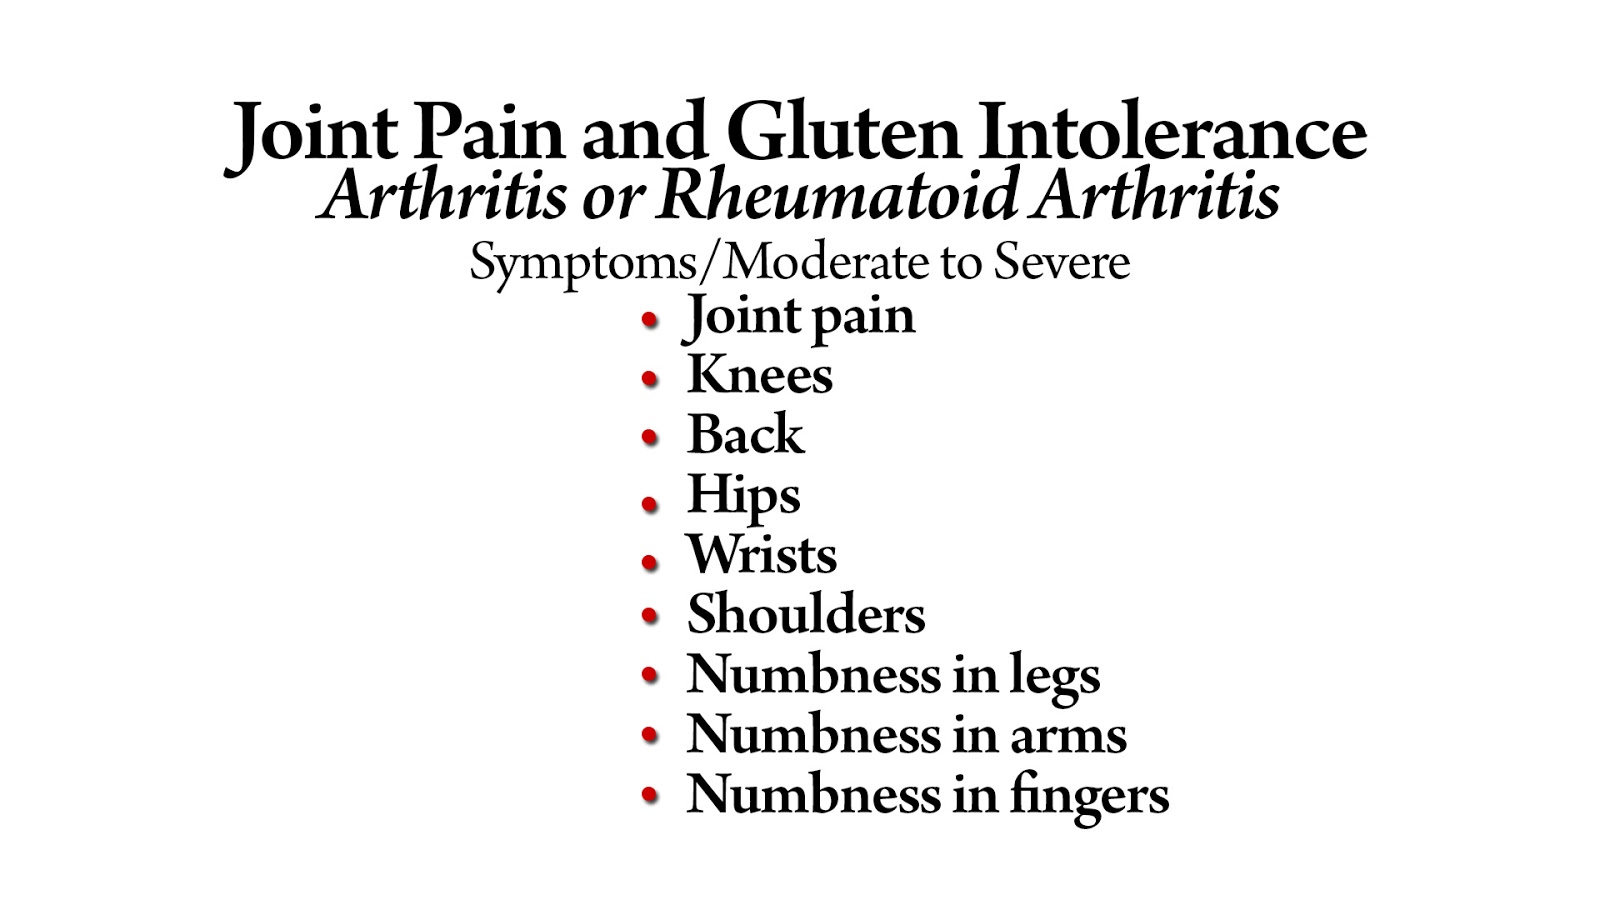 Joint Pain and Gluten Intolerance